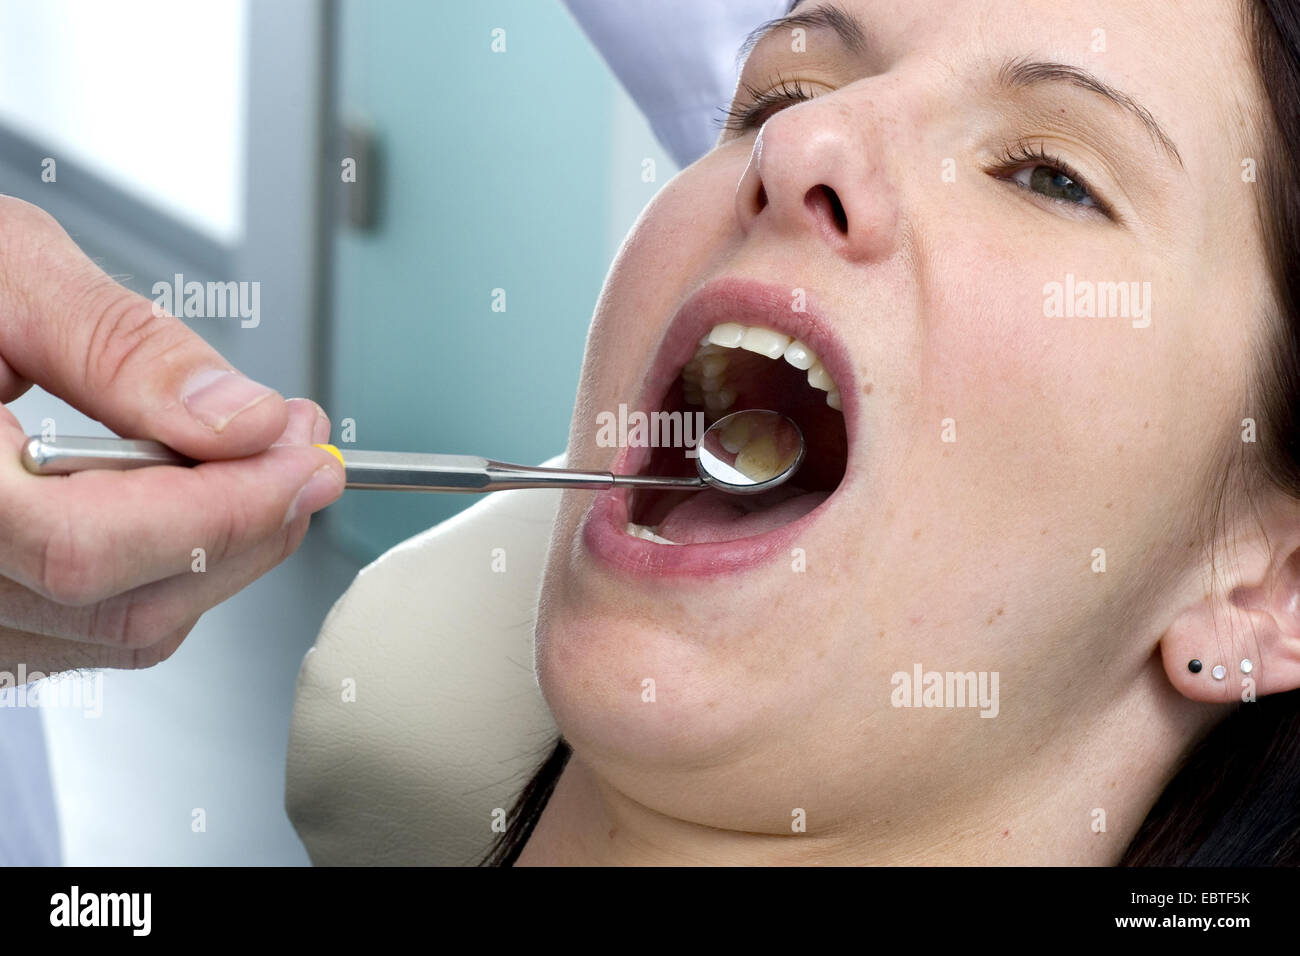 dentist checking teeth of a female patient - Stock Image